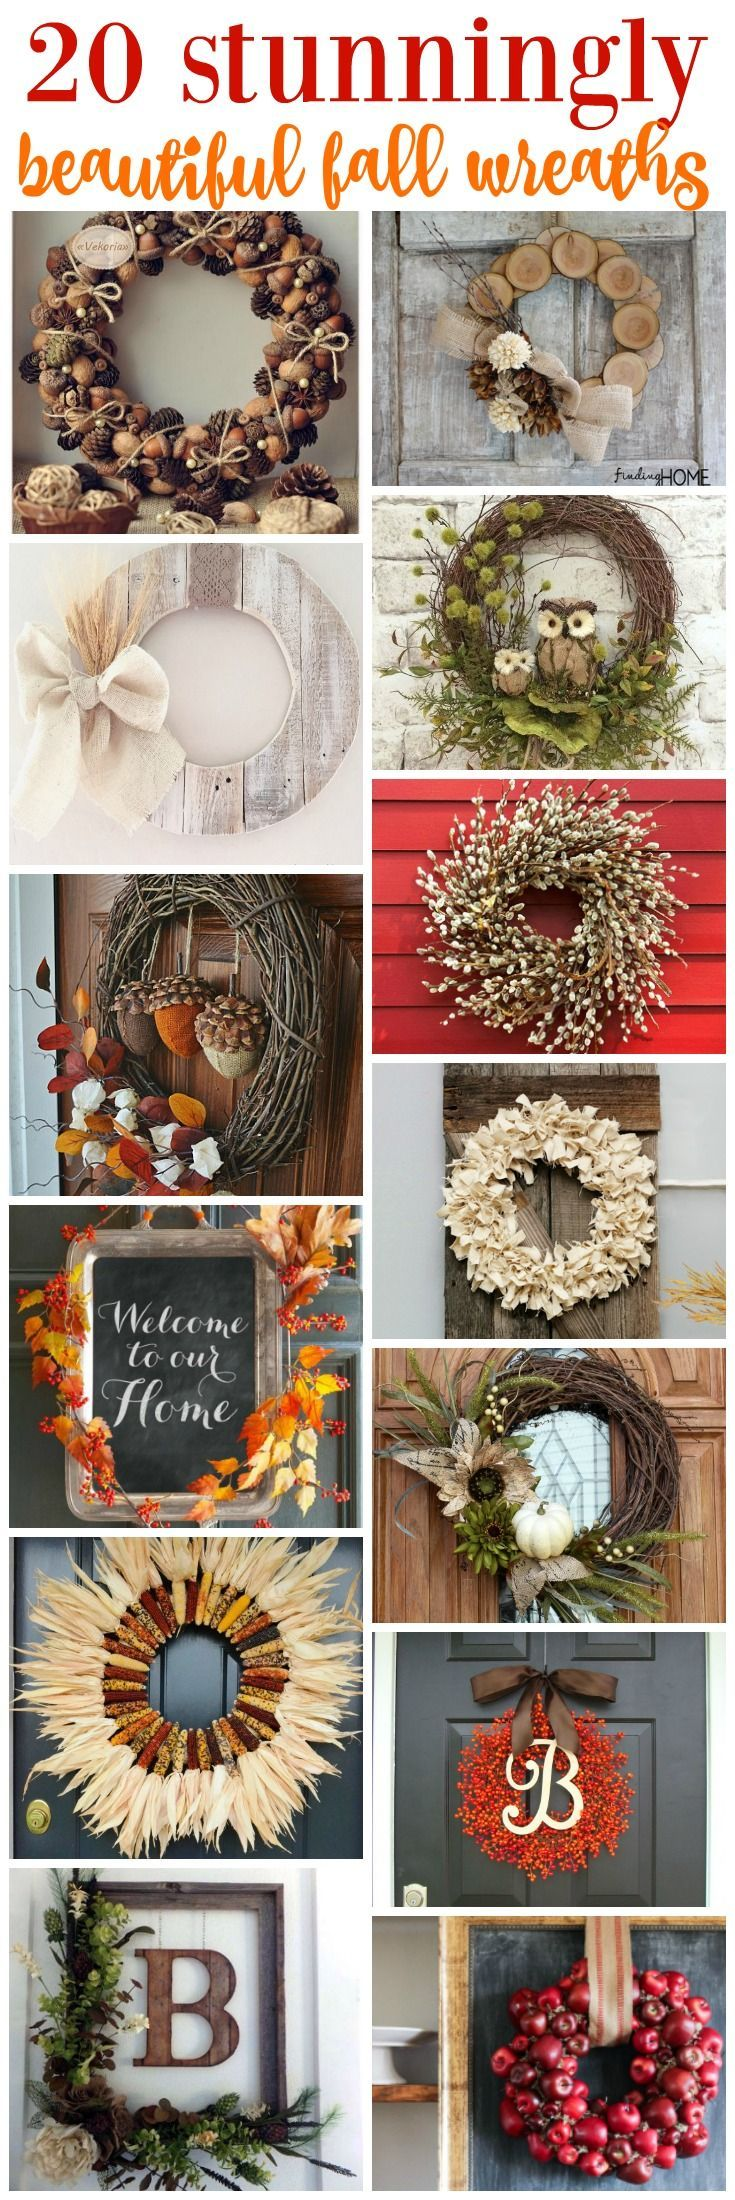 20 Fall wreaths to create With this many options, you are sure to find one that is just right for your home. If not, improvise. That is one of our favorite things about DIY crafts. You can always change up colors, sizes, materials etc to make it your own.